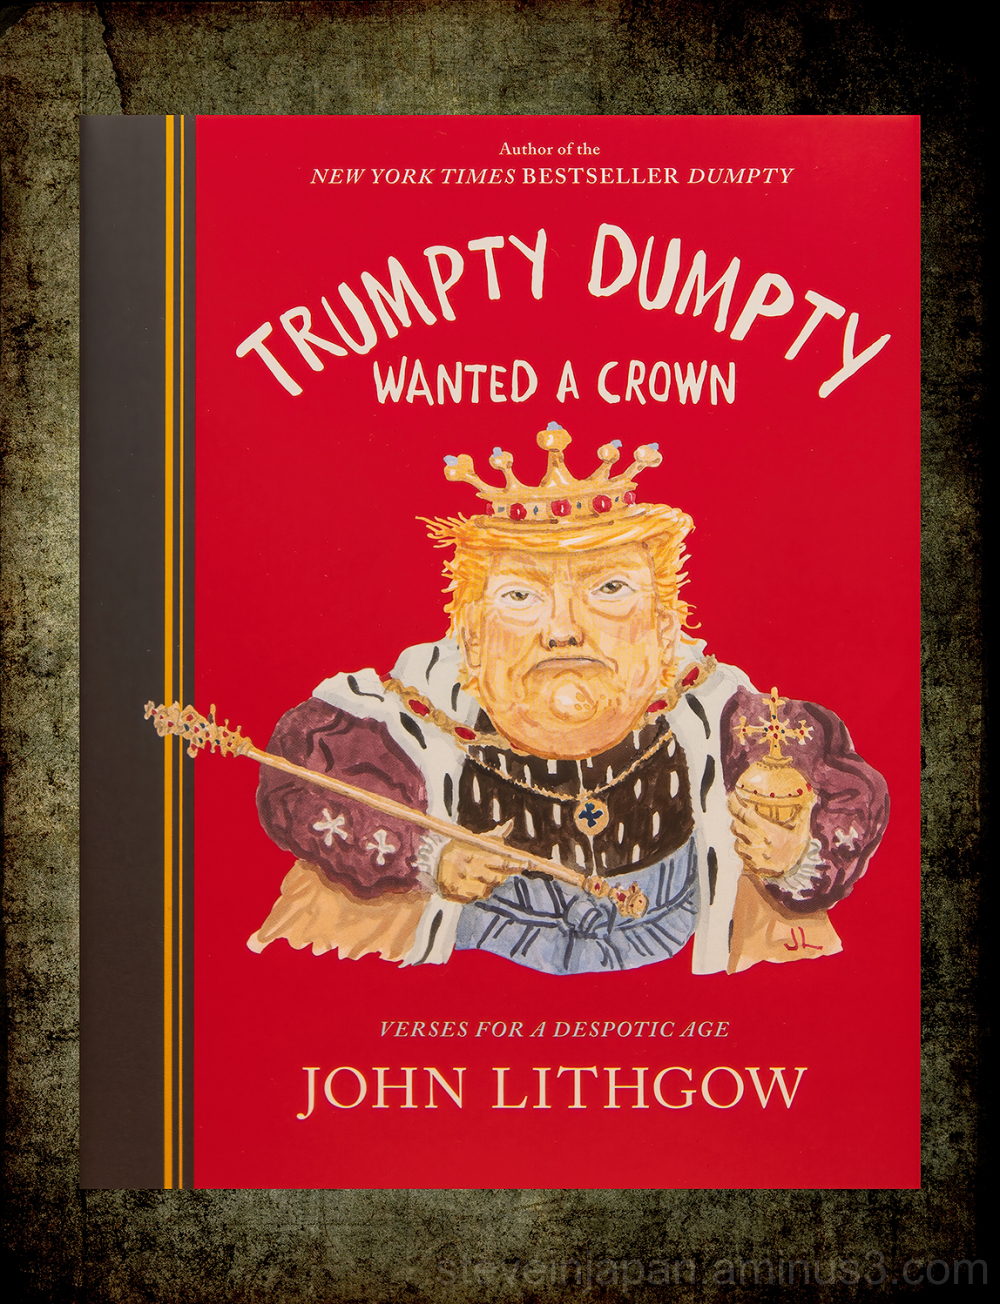 Trumpty Dumpty, a book by John Lithgow.